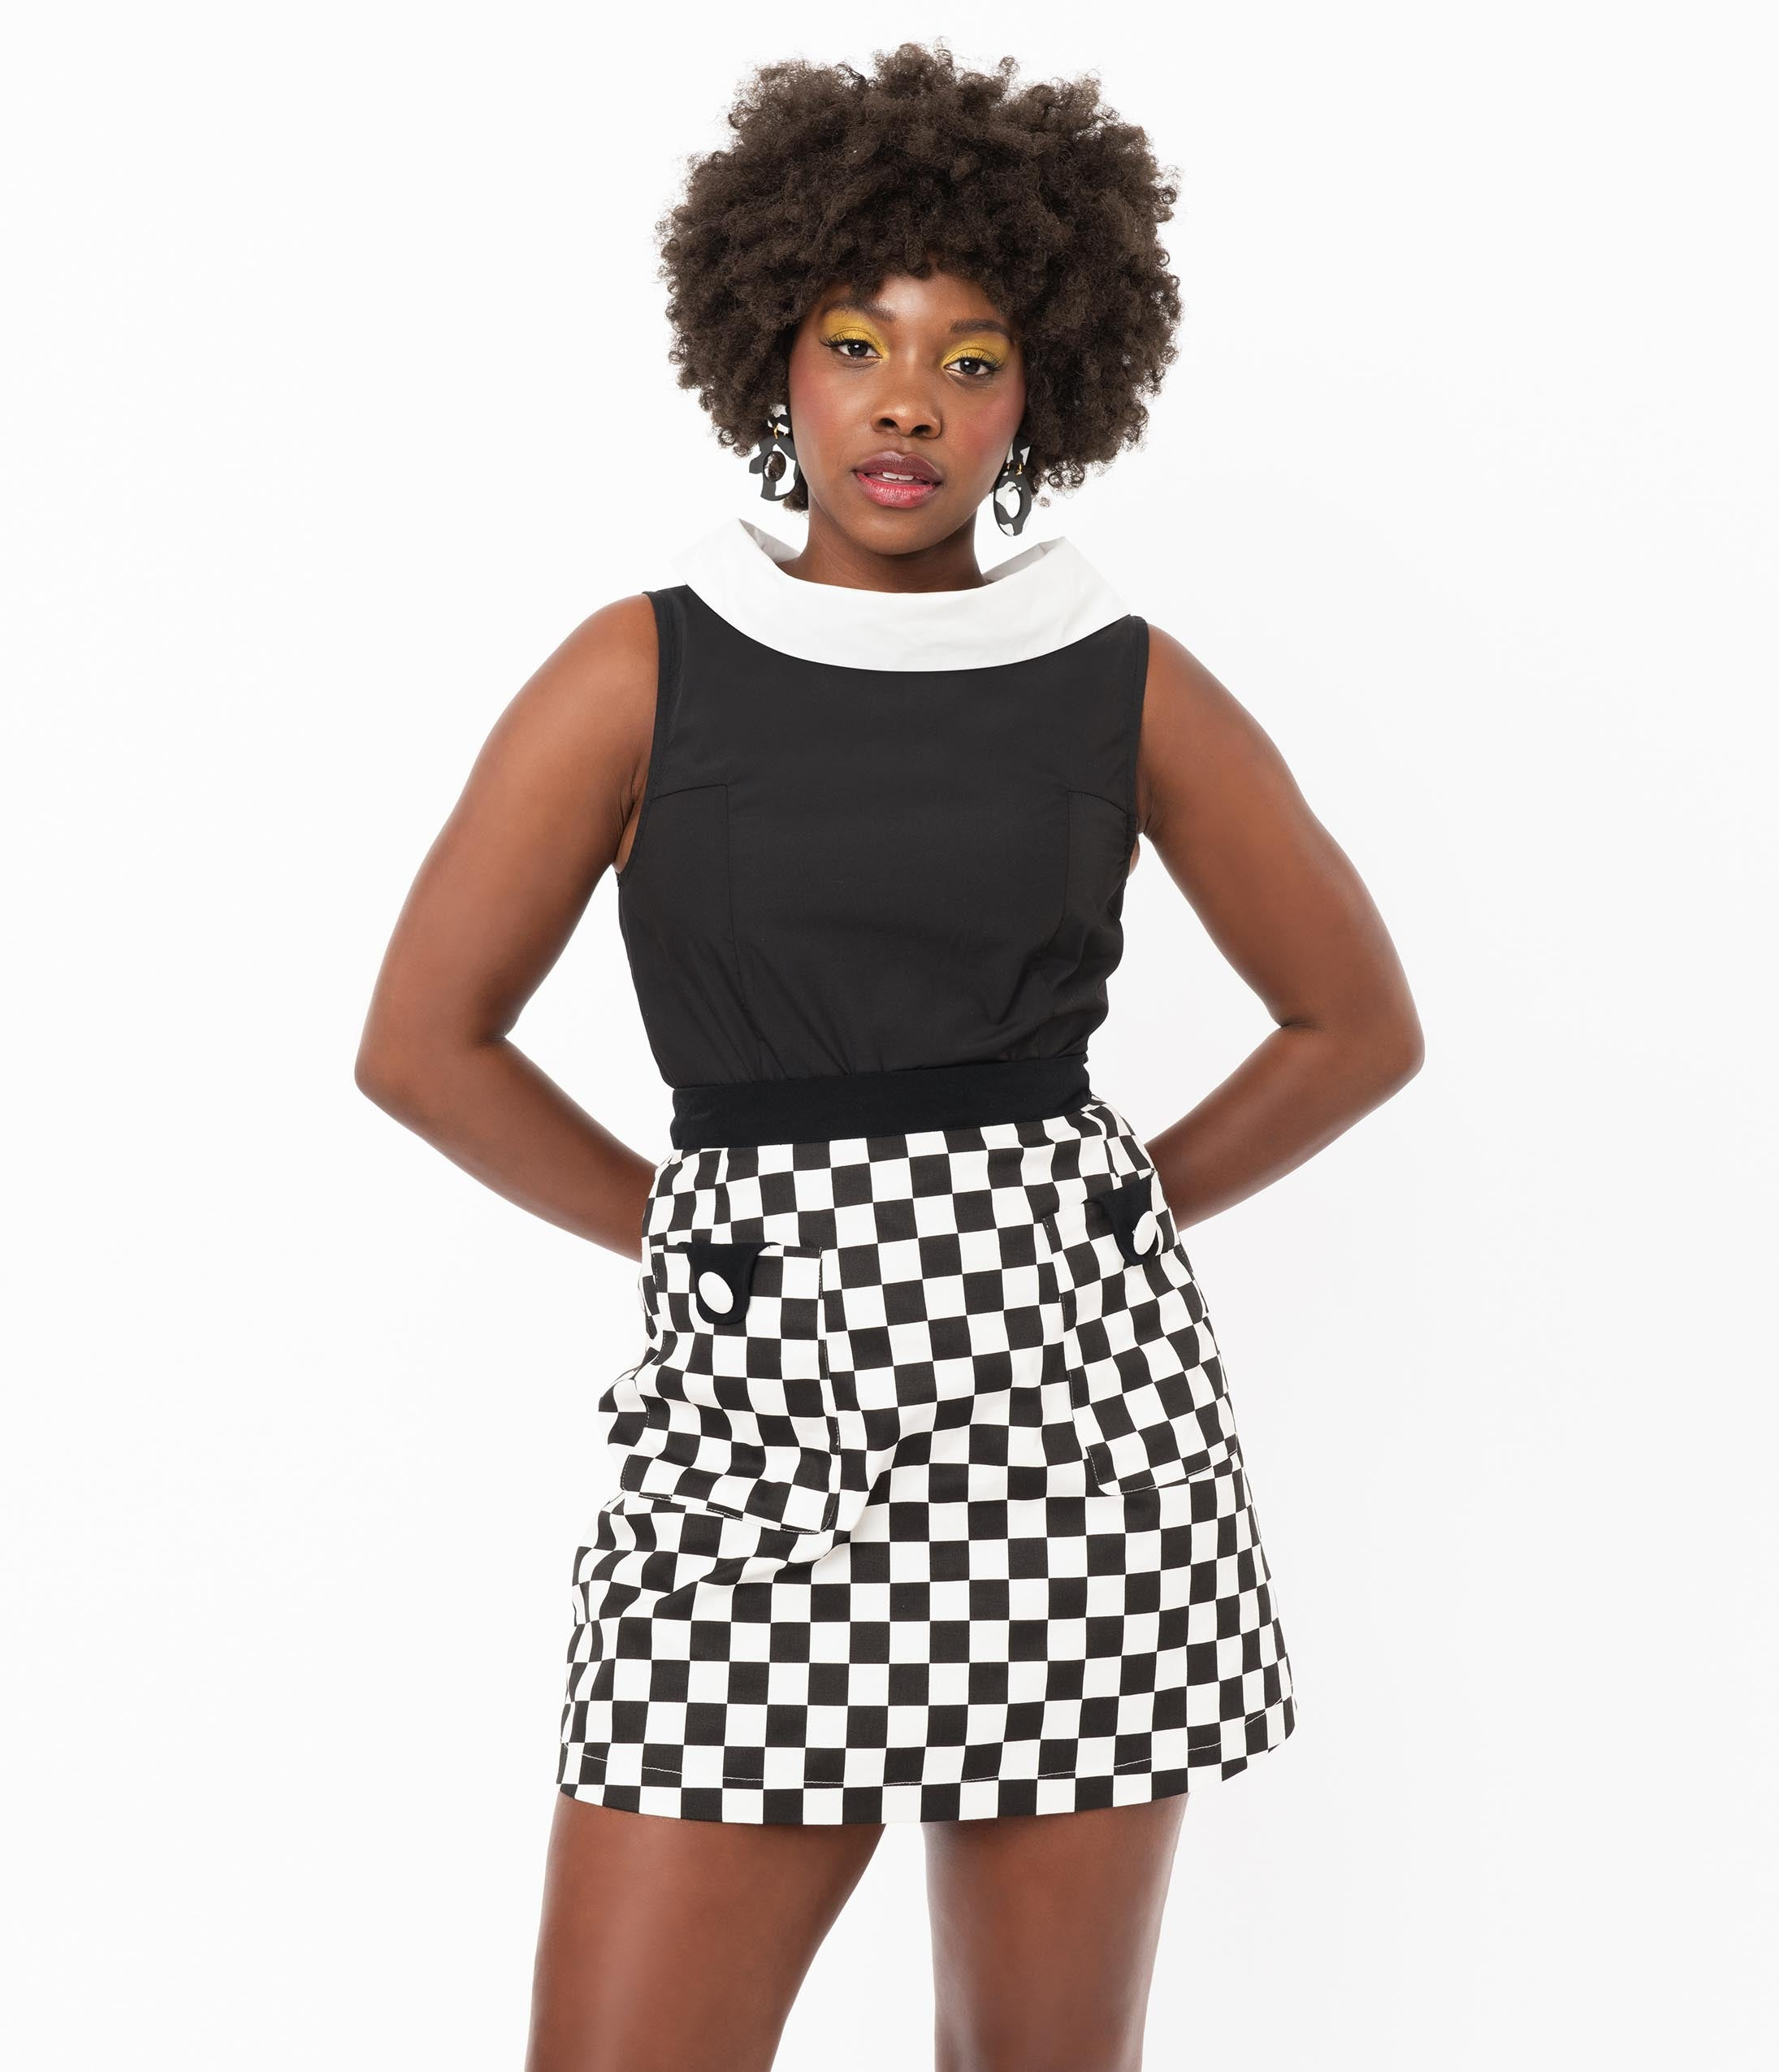 1960s Style Clothing & 60s Fashion Smak Parlour Black  White Checkered Mod Skirt $48.00 AT vintagedancer.com